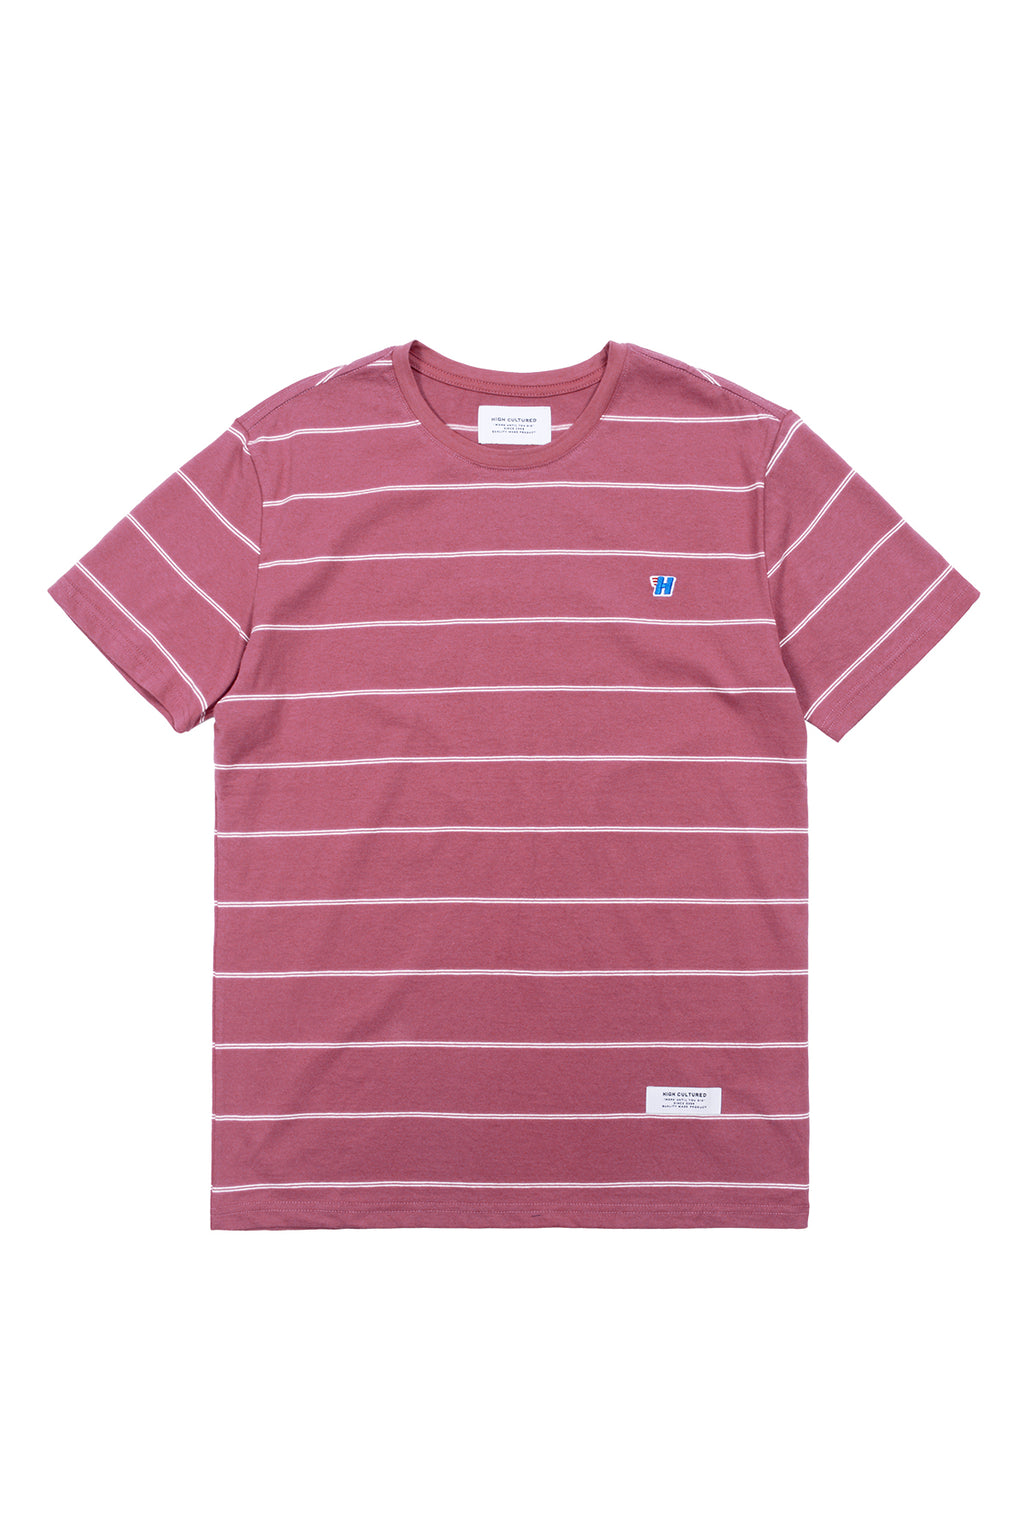 ULTRA LIGHT STRIPES 'H' WING TEE - 759